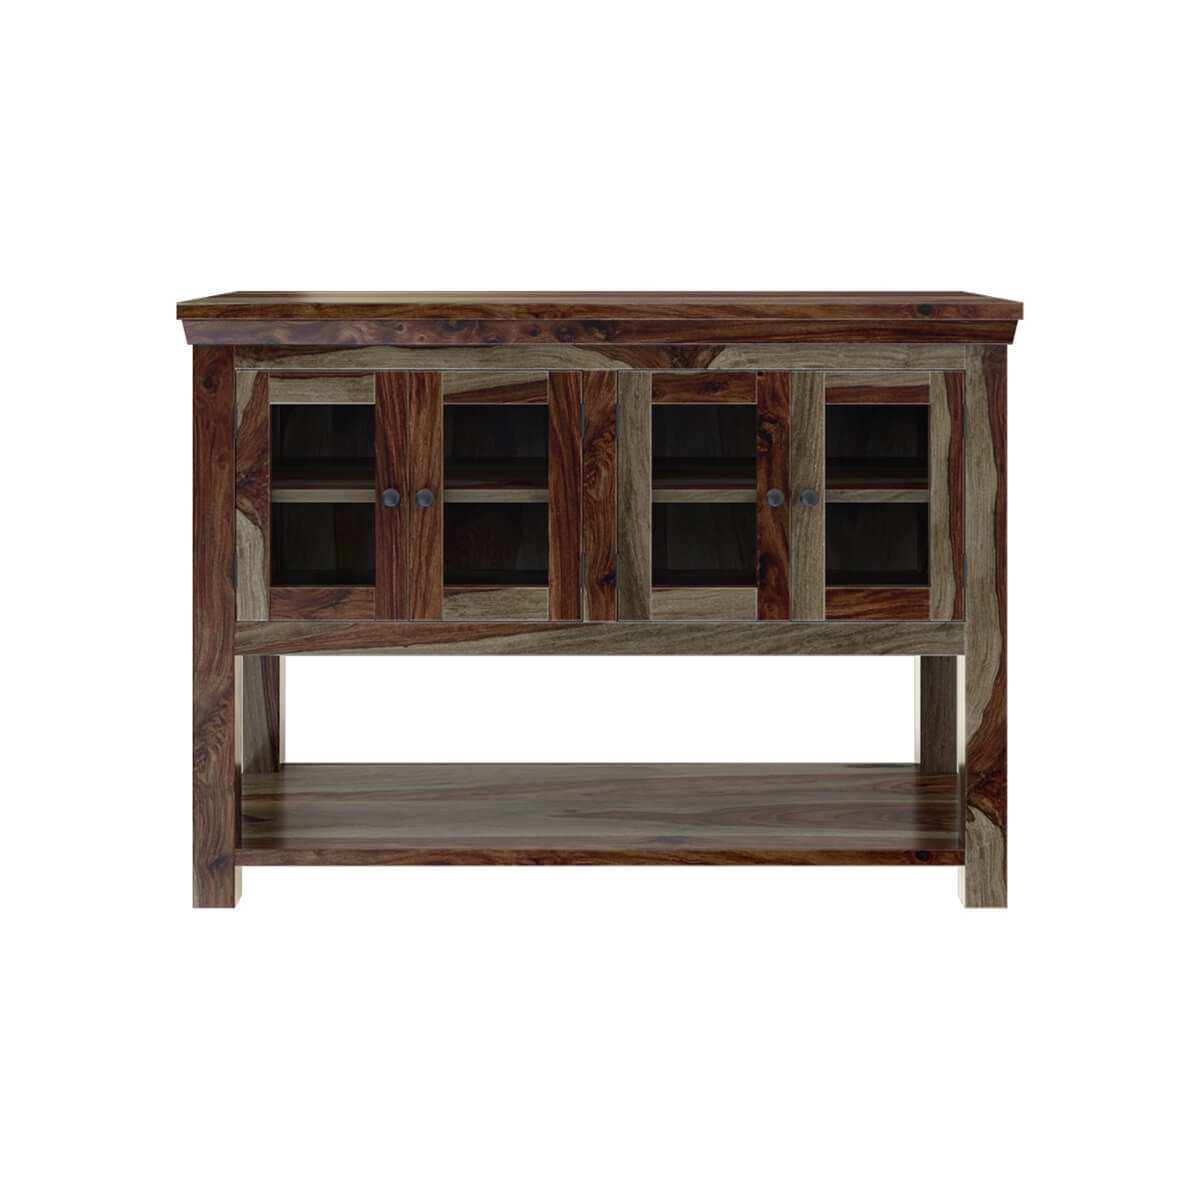 ... Room Buffets & Sideboards Modern Rustic Sierra Solid Wood Buffet Table